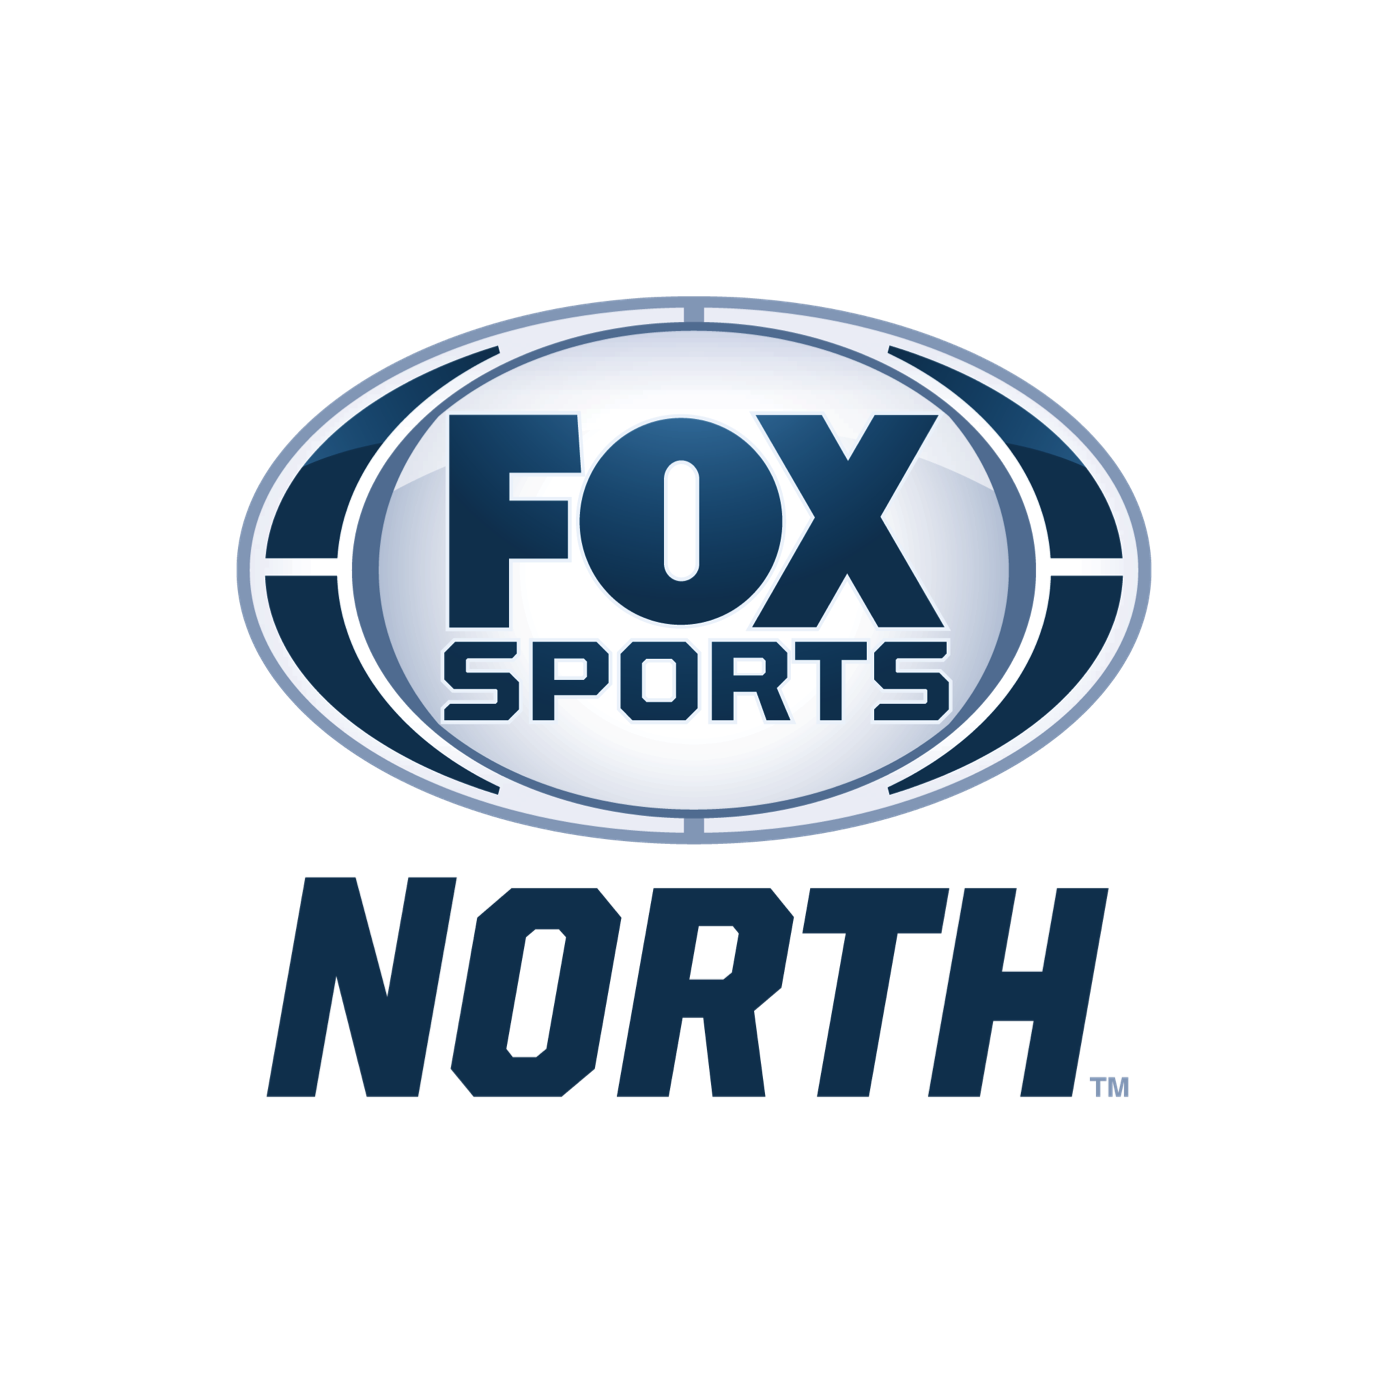 Fox Sports North logo